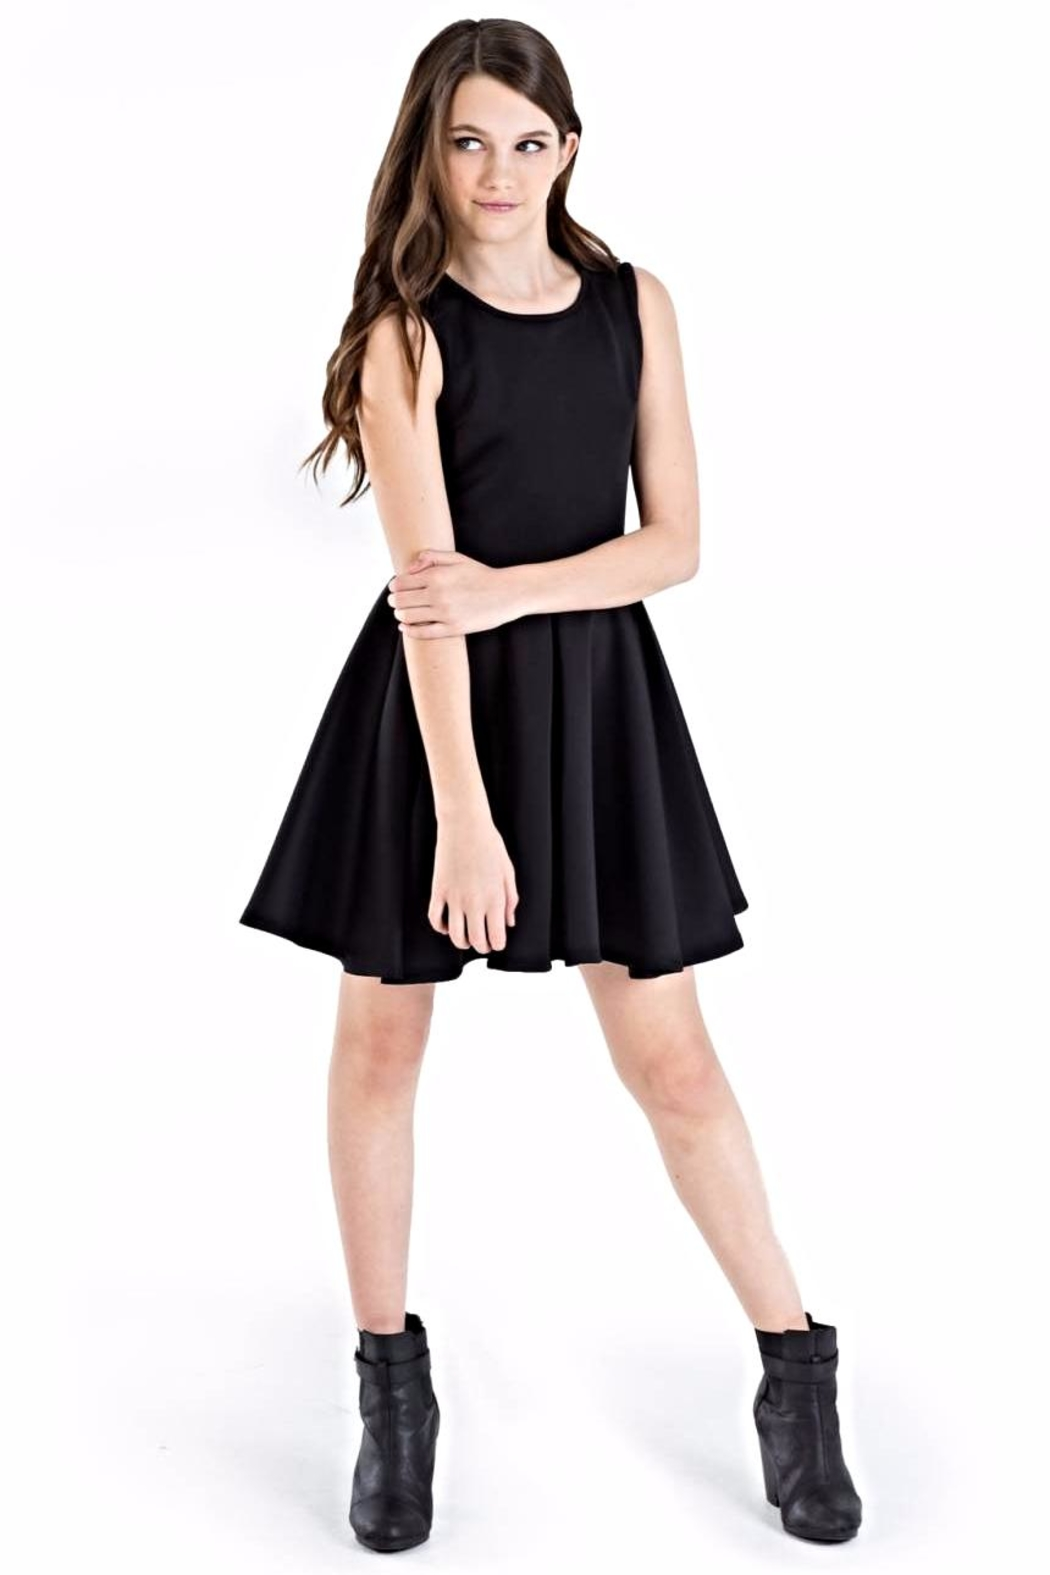 77b3f0052e81 Miss Behave girls Carrie Missbehave Dress from Texas by Rock2Royal ...